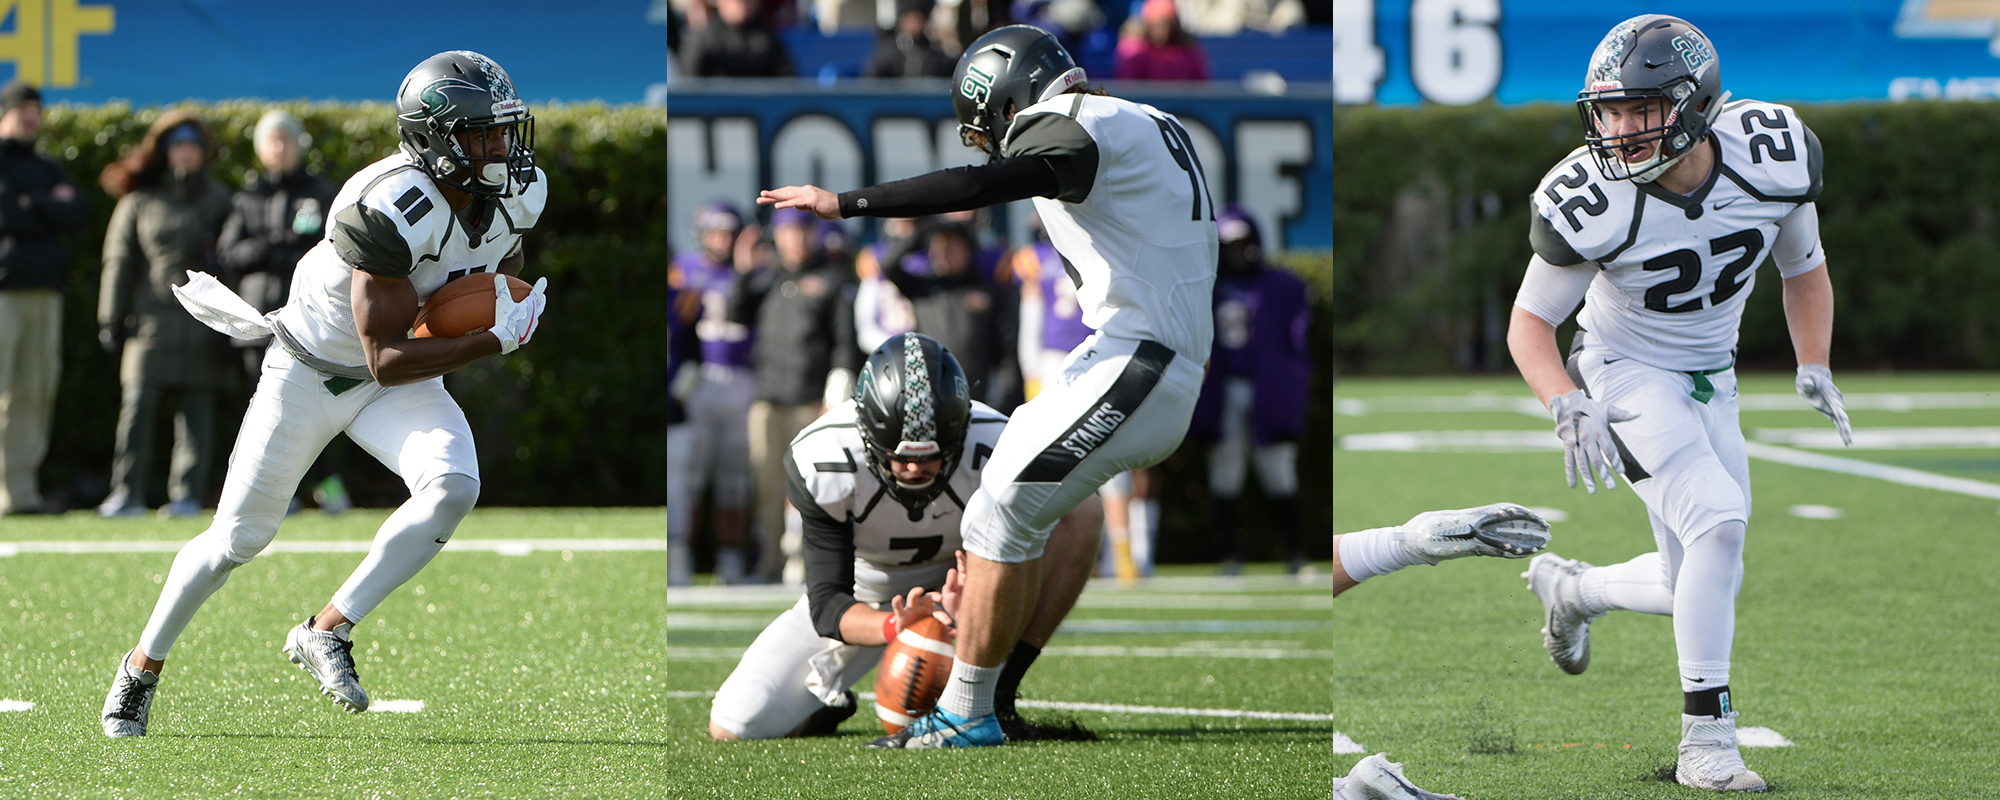 Pietrzyk, Gould, Addo Honored as ECAC All-Stars